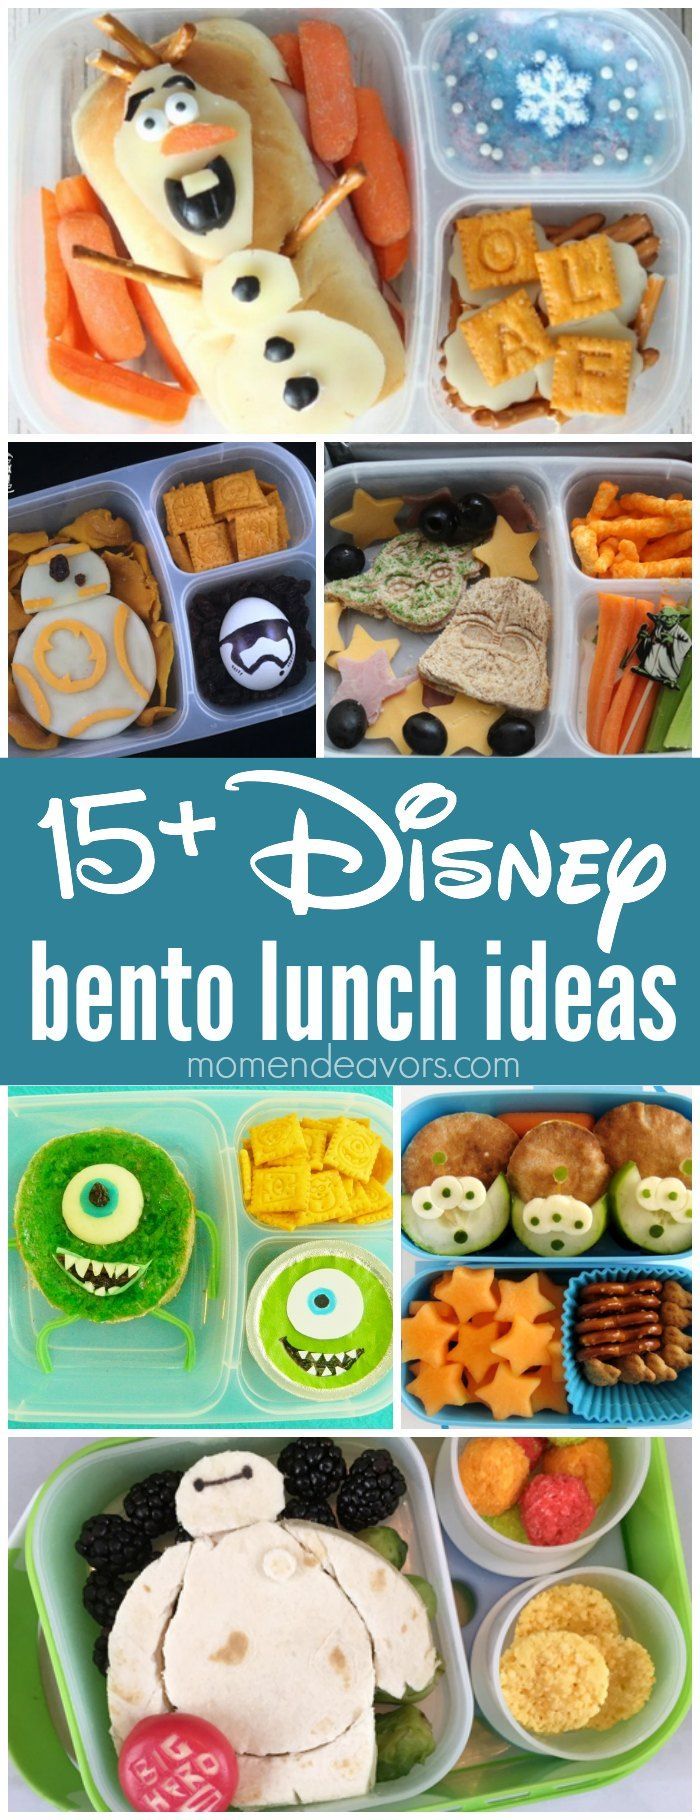 15+ Disney Bento Lunch Ideas - adorable lunches inspired from Frozen, Star Wars, Monsters Inc, Toy Story, and more Disney favorites! Perfect for a creative back-to-school lunch surprise!